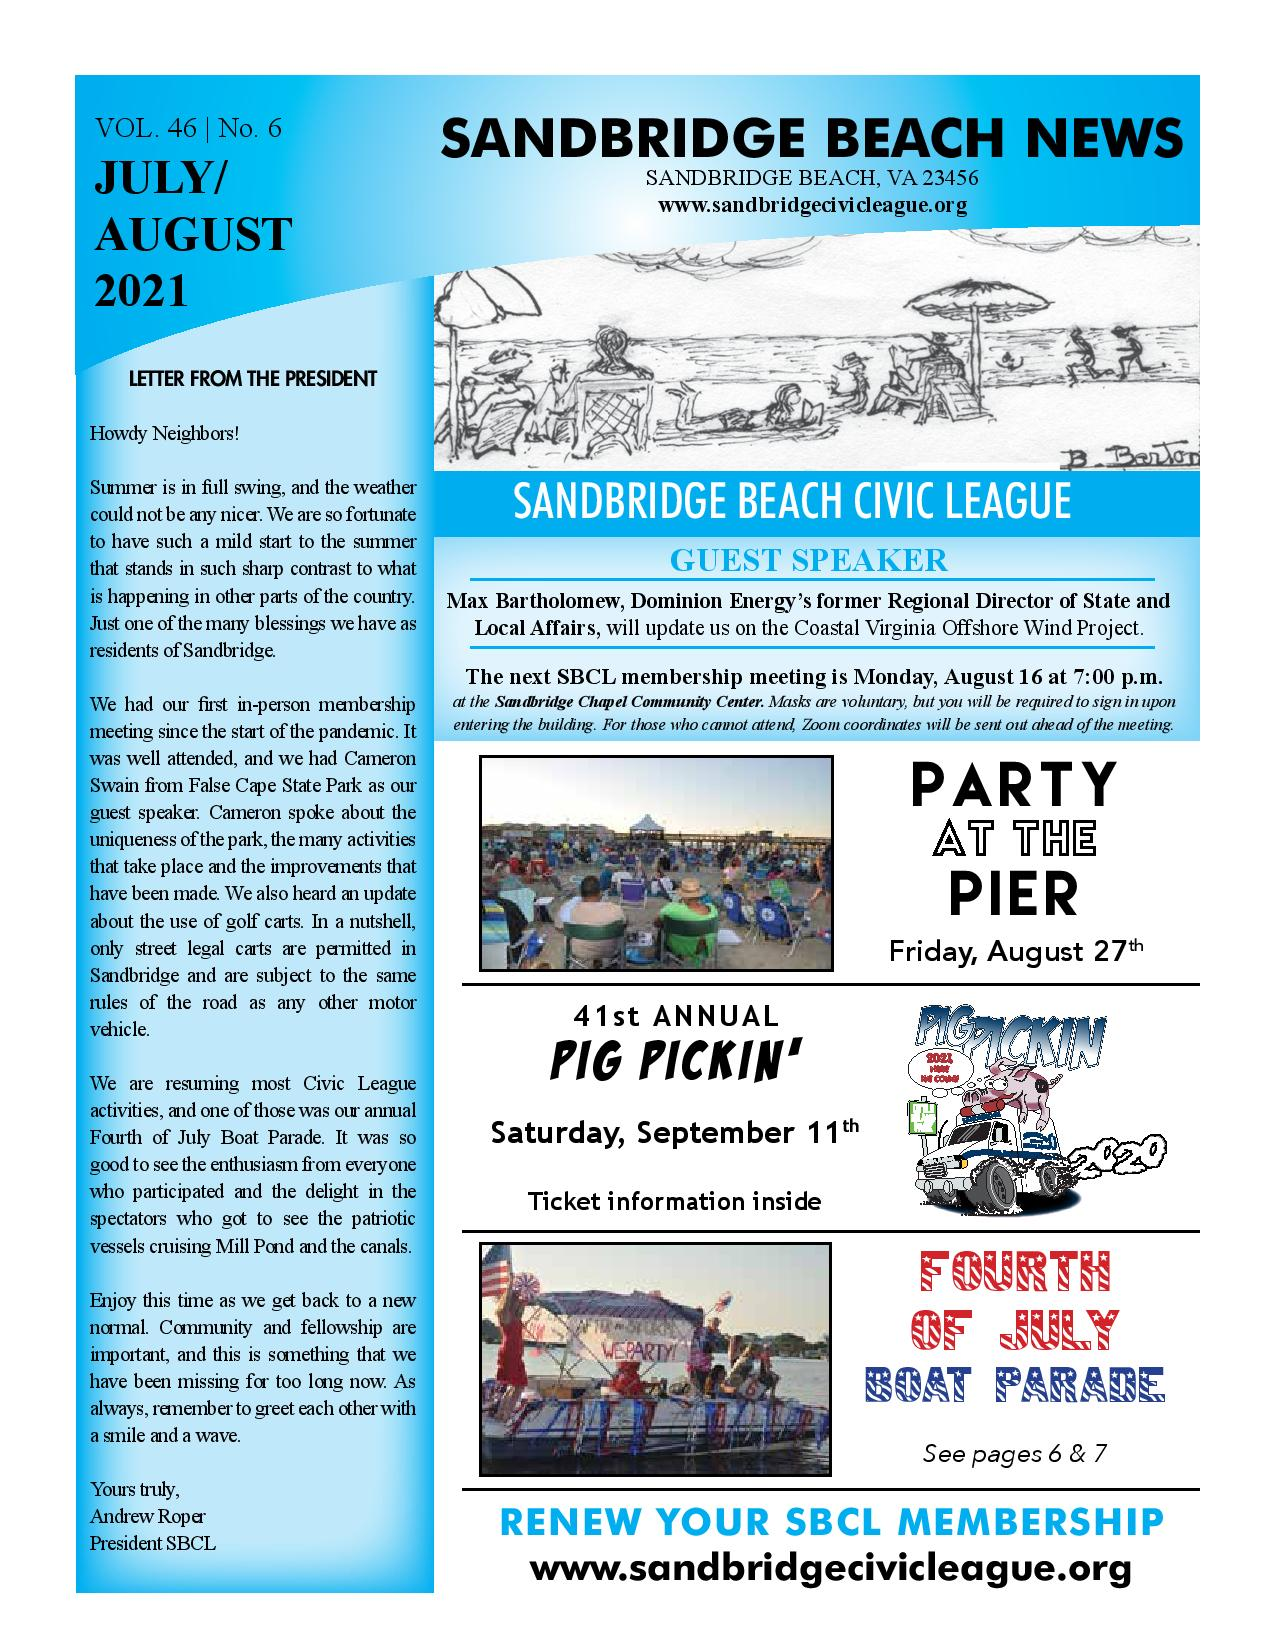 SBCL Newsletter July/August 2021